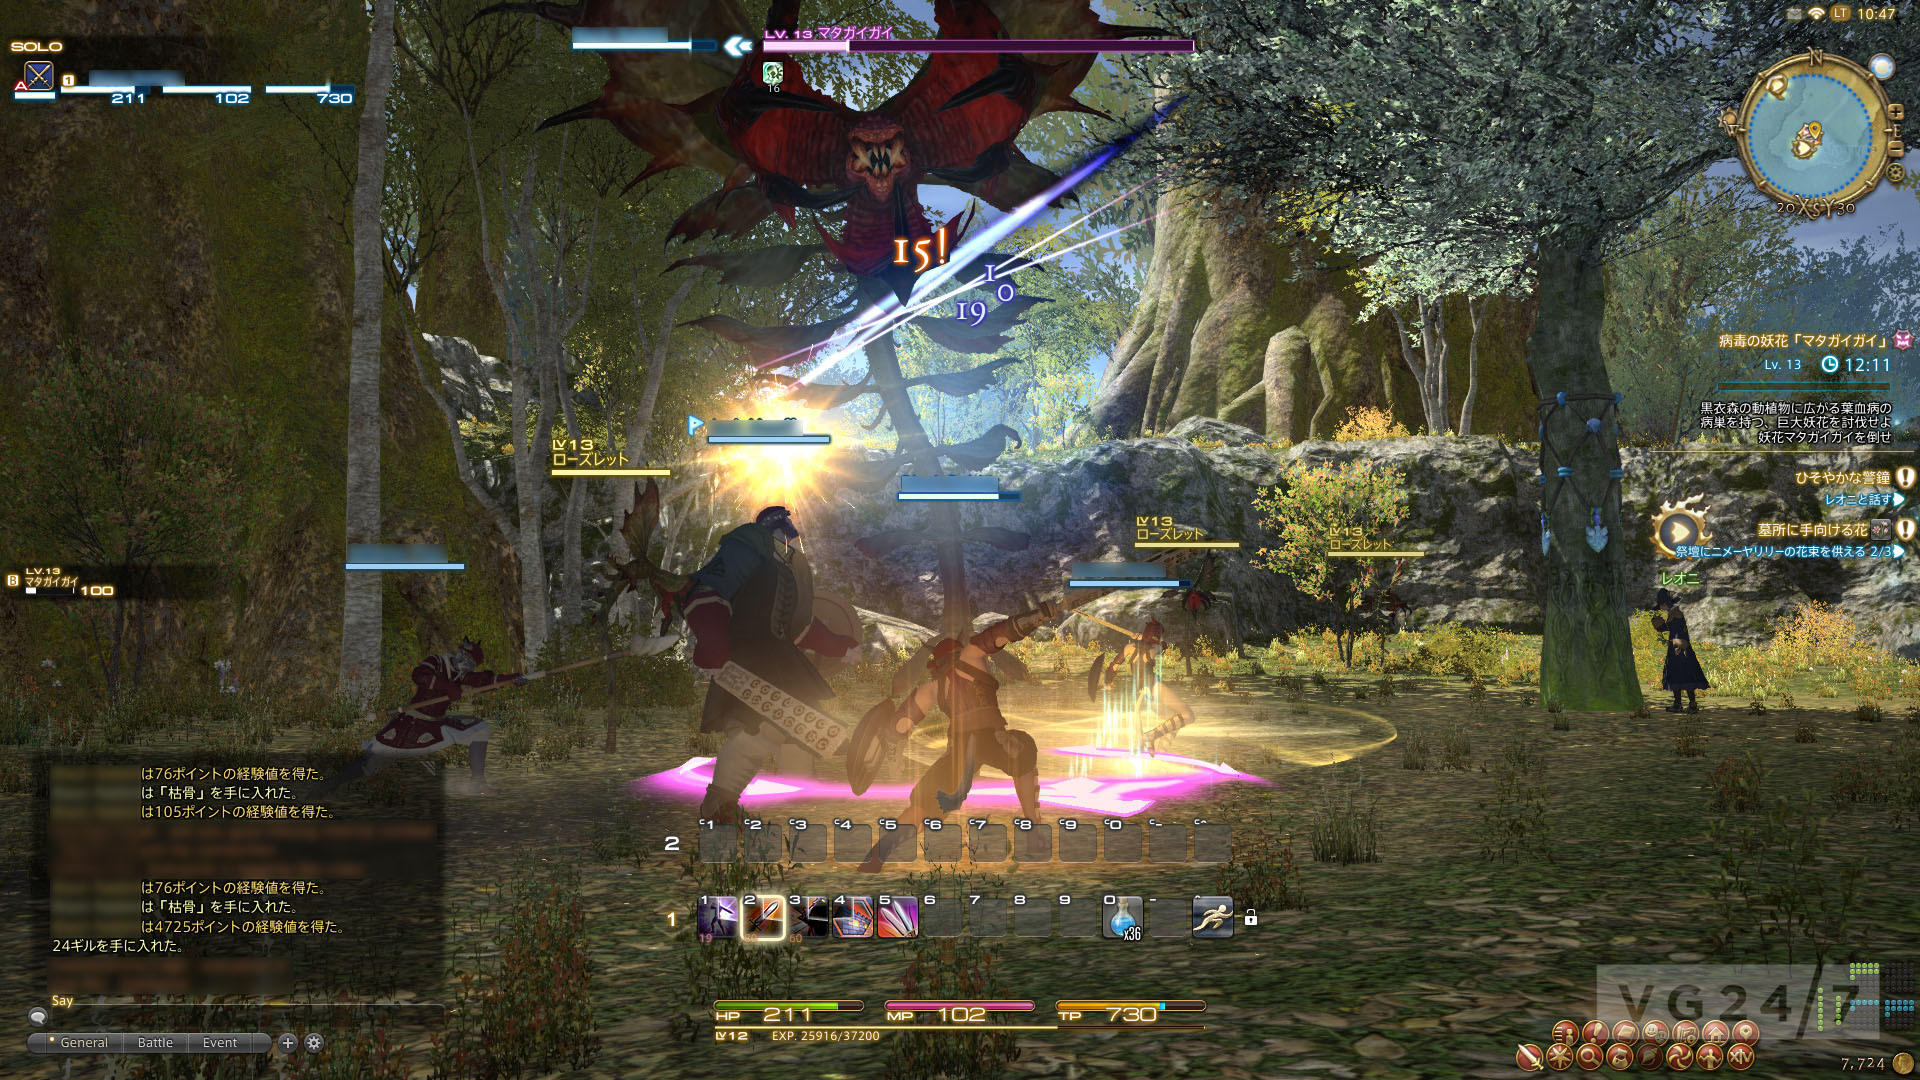 Final Fantasy 14 Beta Weekend Spawns A Barrage Of New